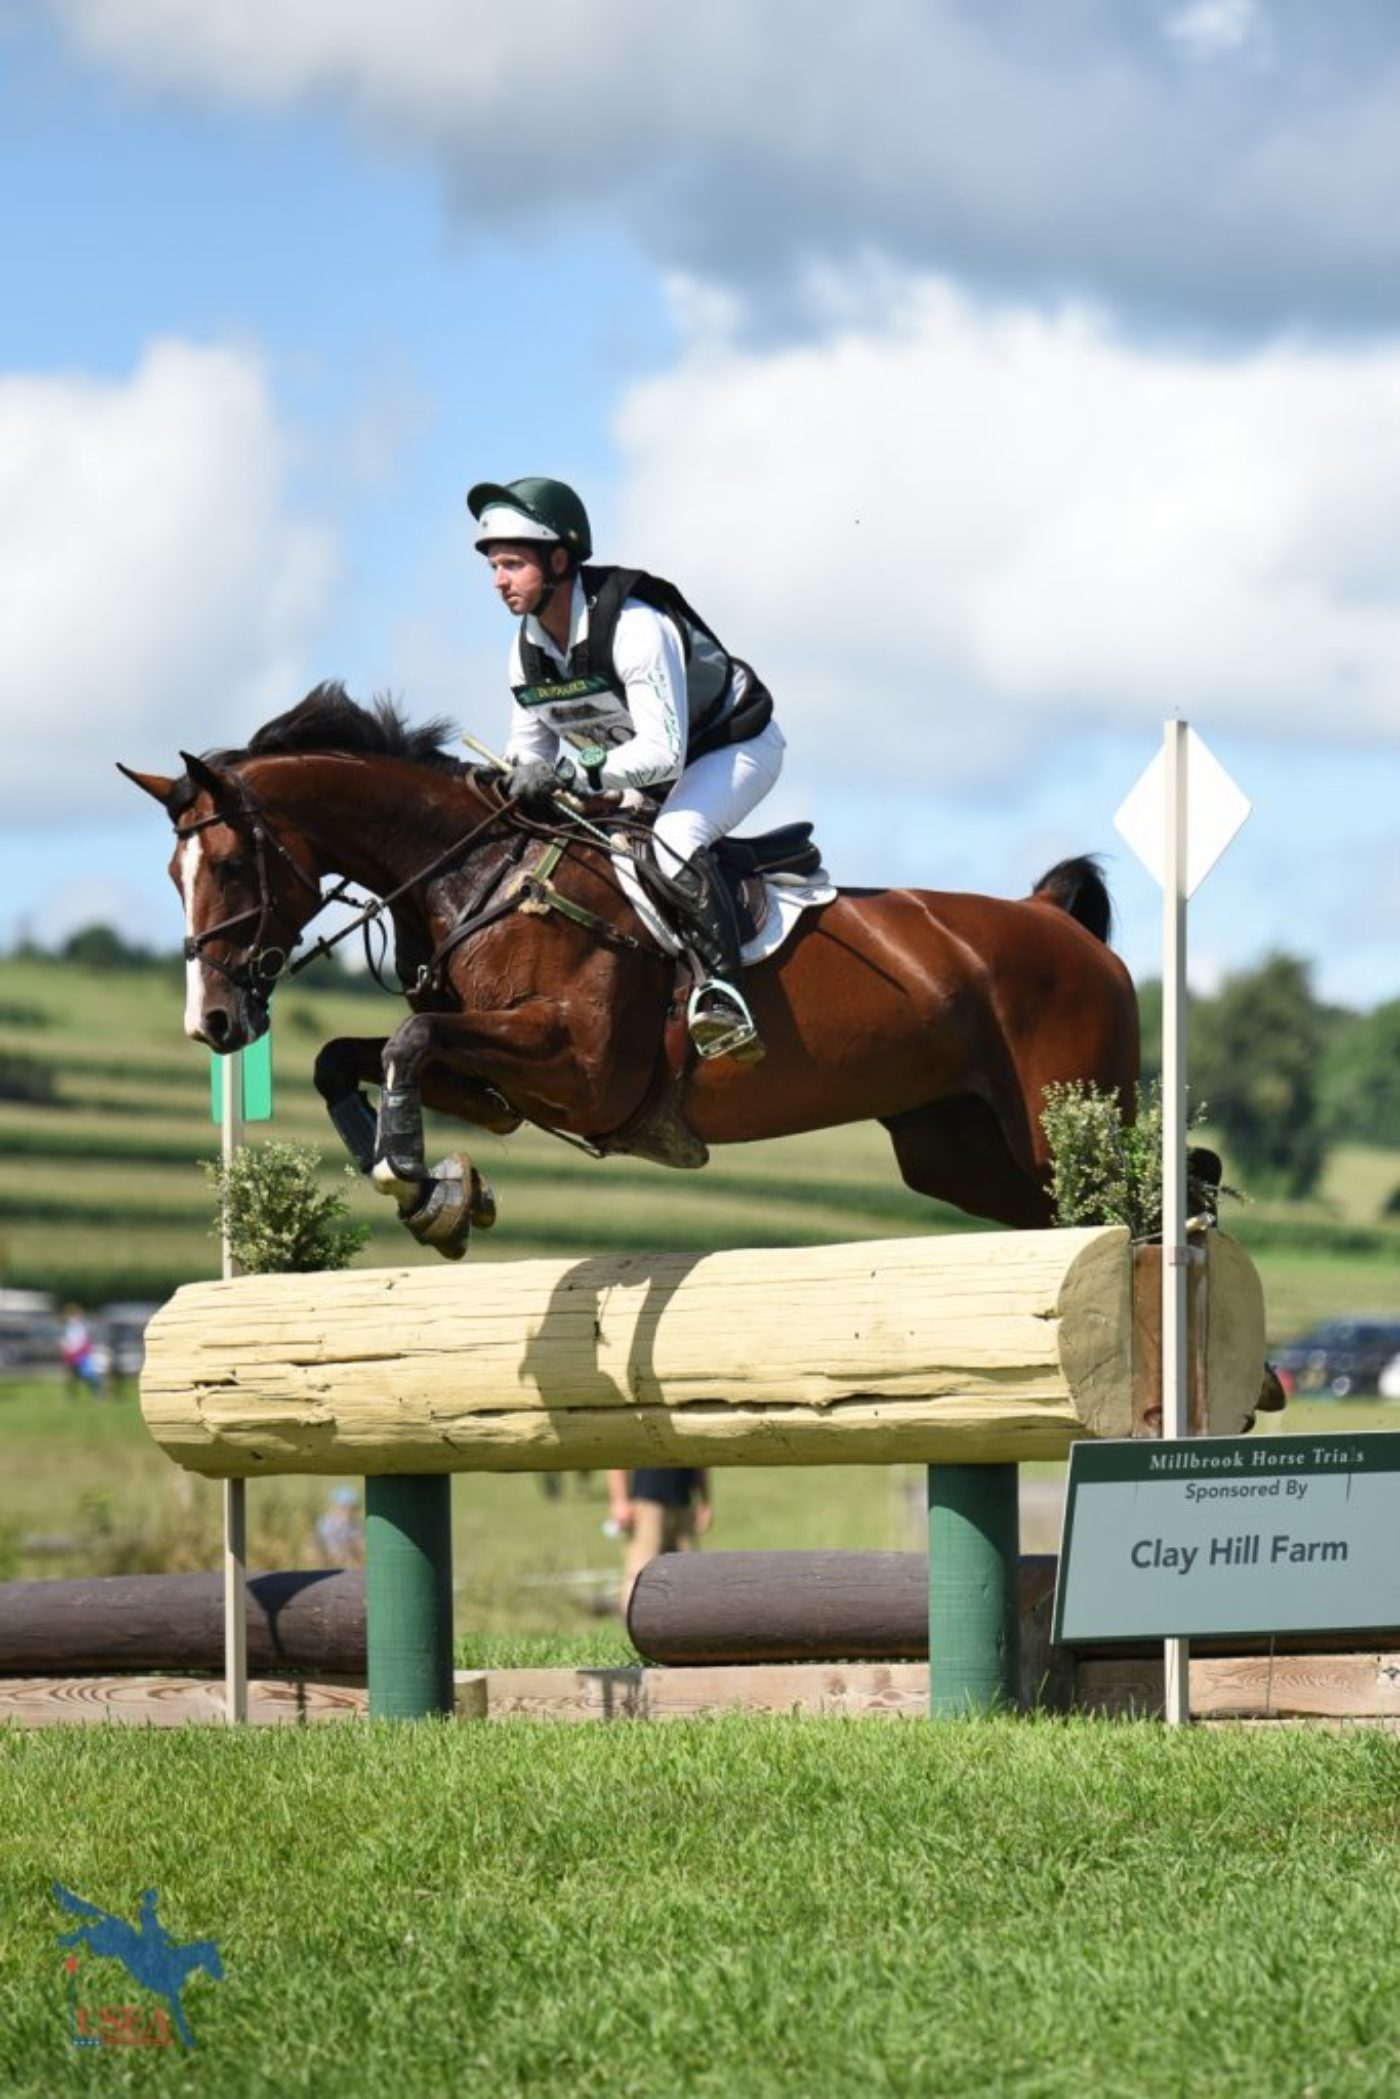 Tim Bourke and Looks Quality making the Preliminary brush rail look like child's play. USEA/Jessica Duffy Photo.